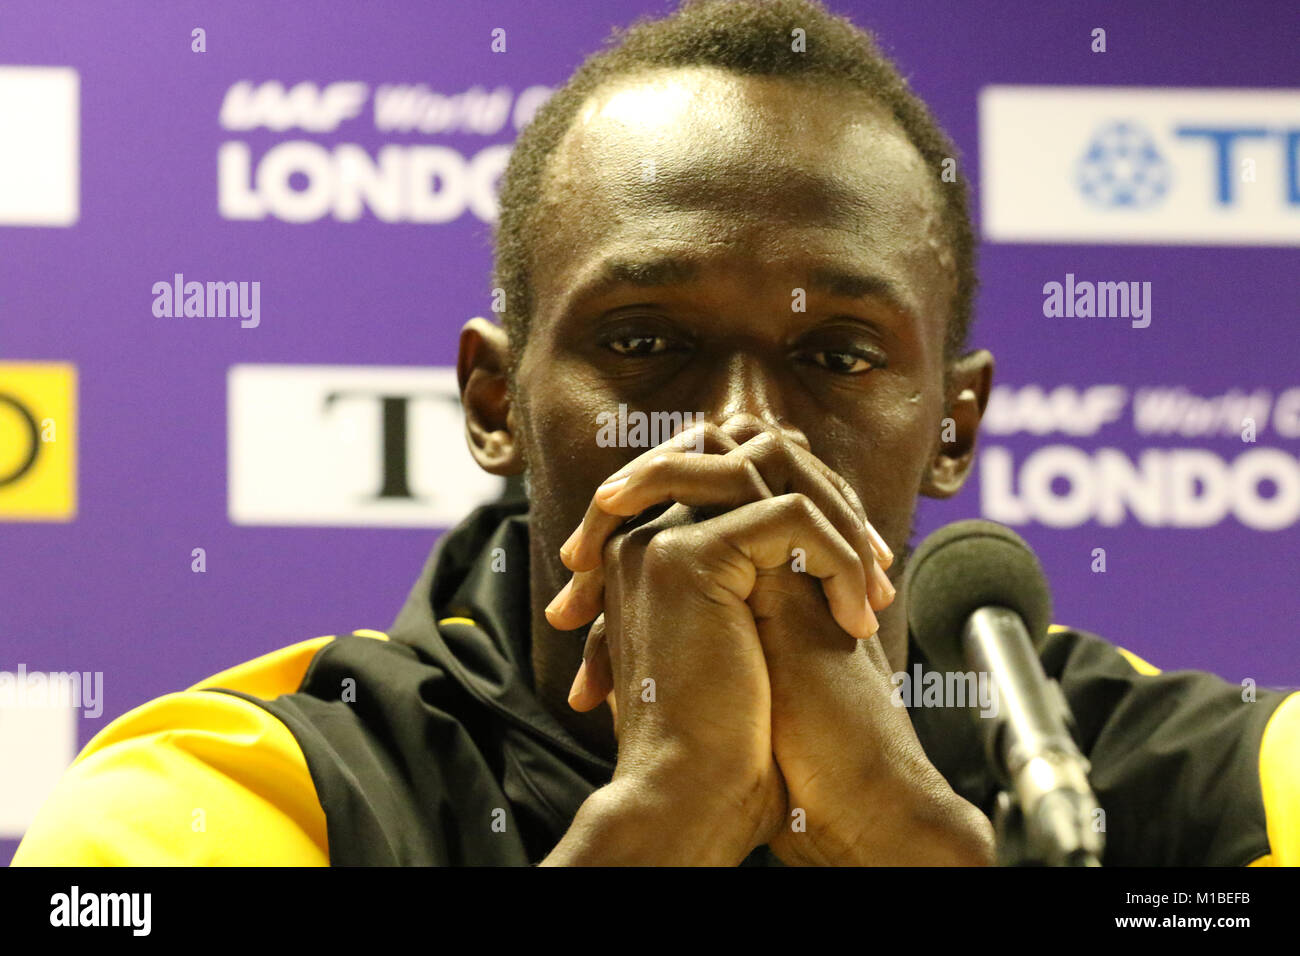 a sad looking Usain Bolt meets the press after finishing second at the IAAF World Athletics Championships. - Stock Image